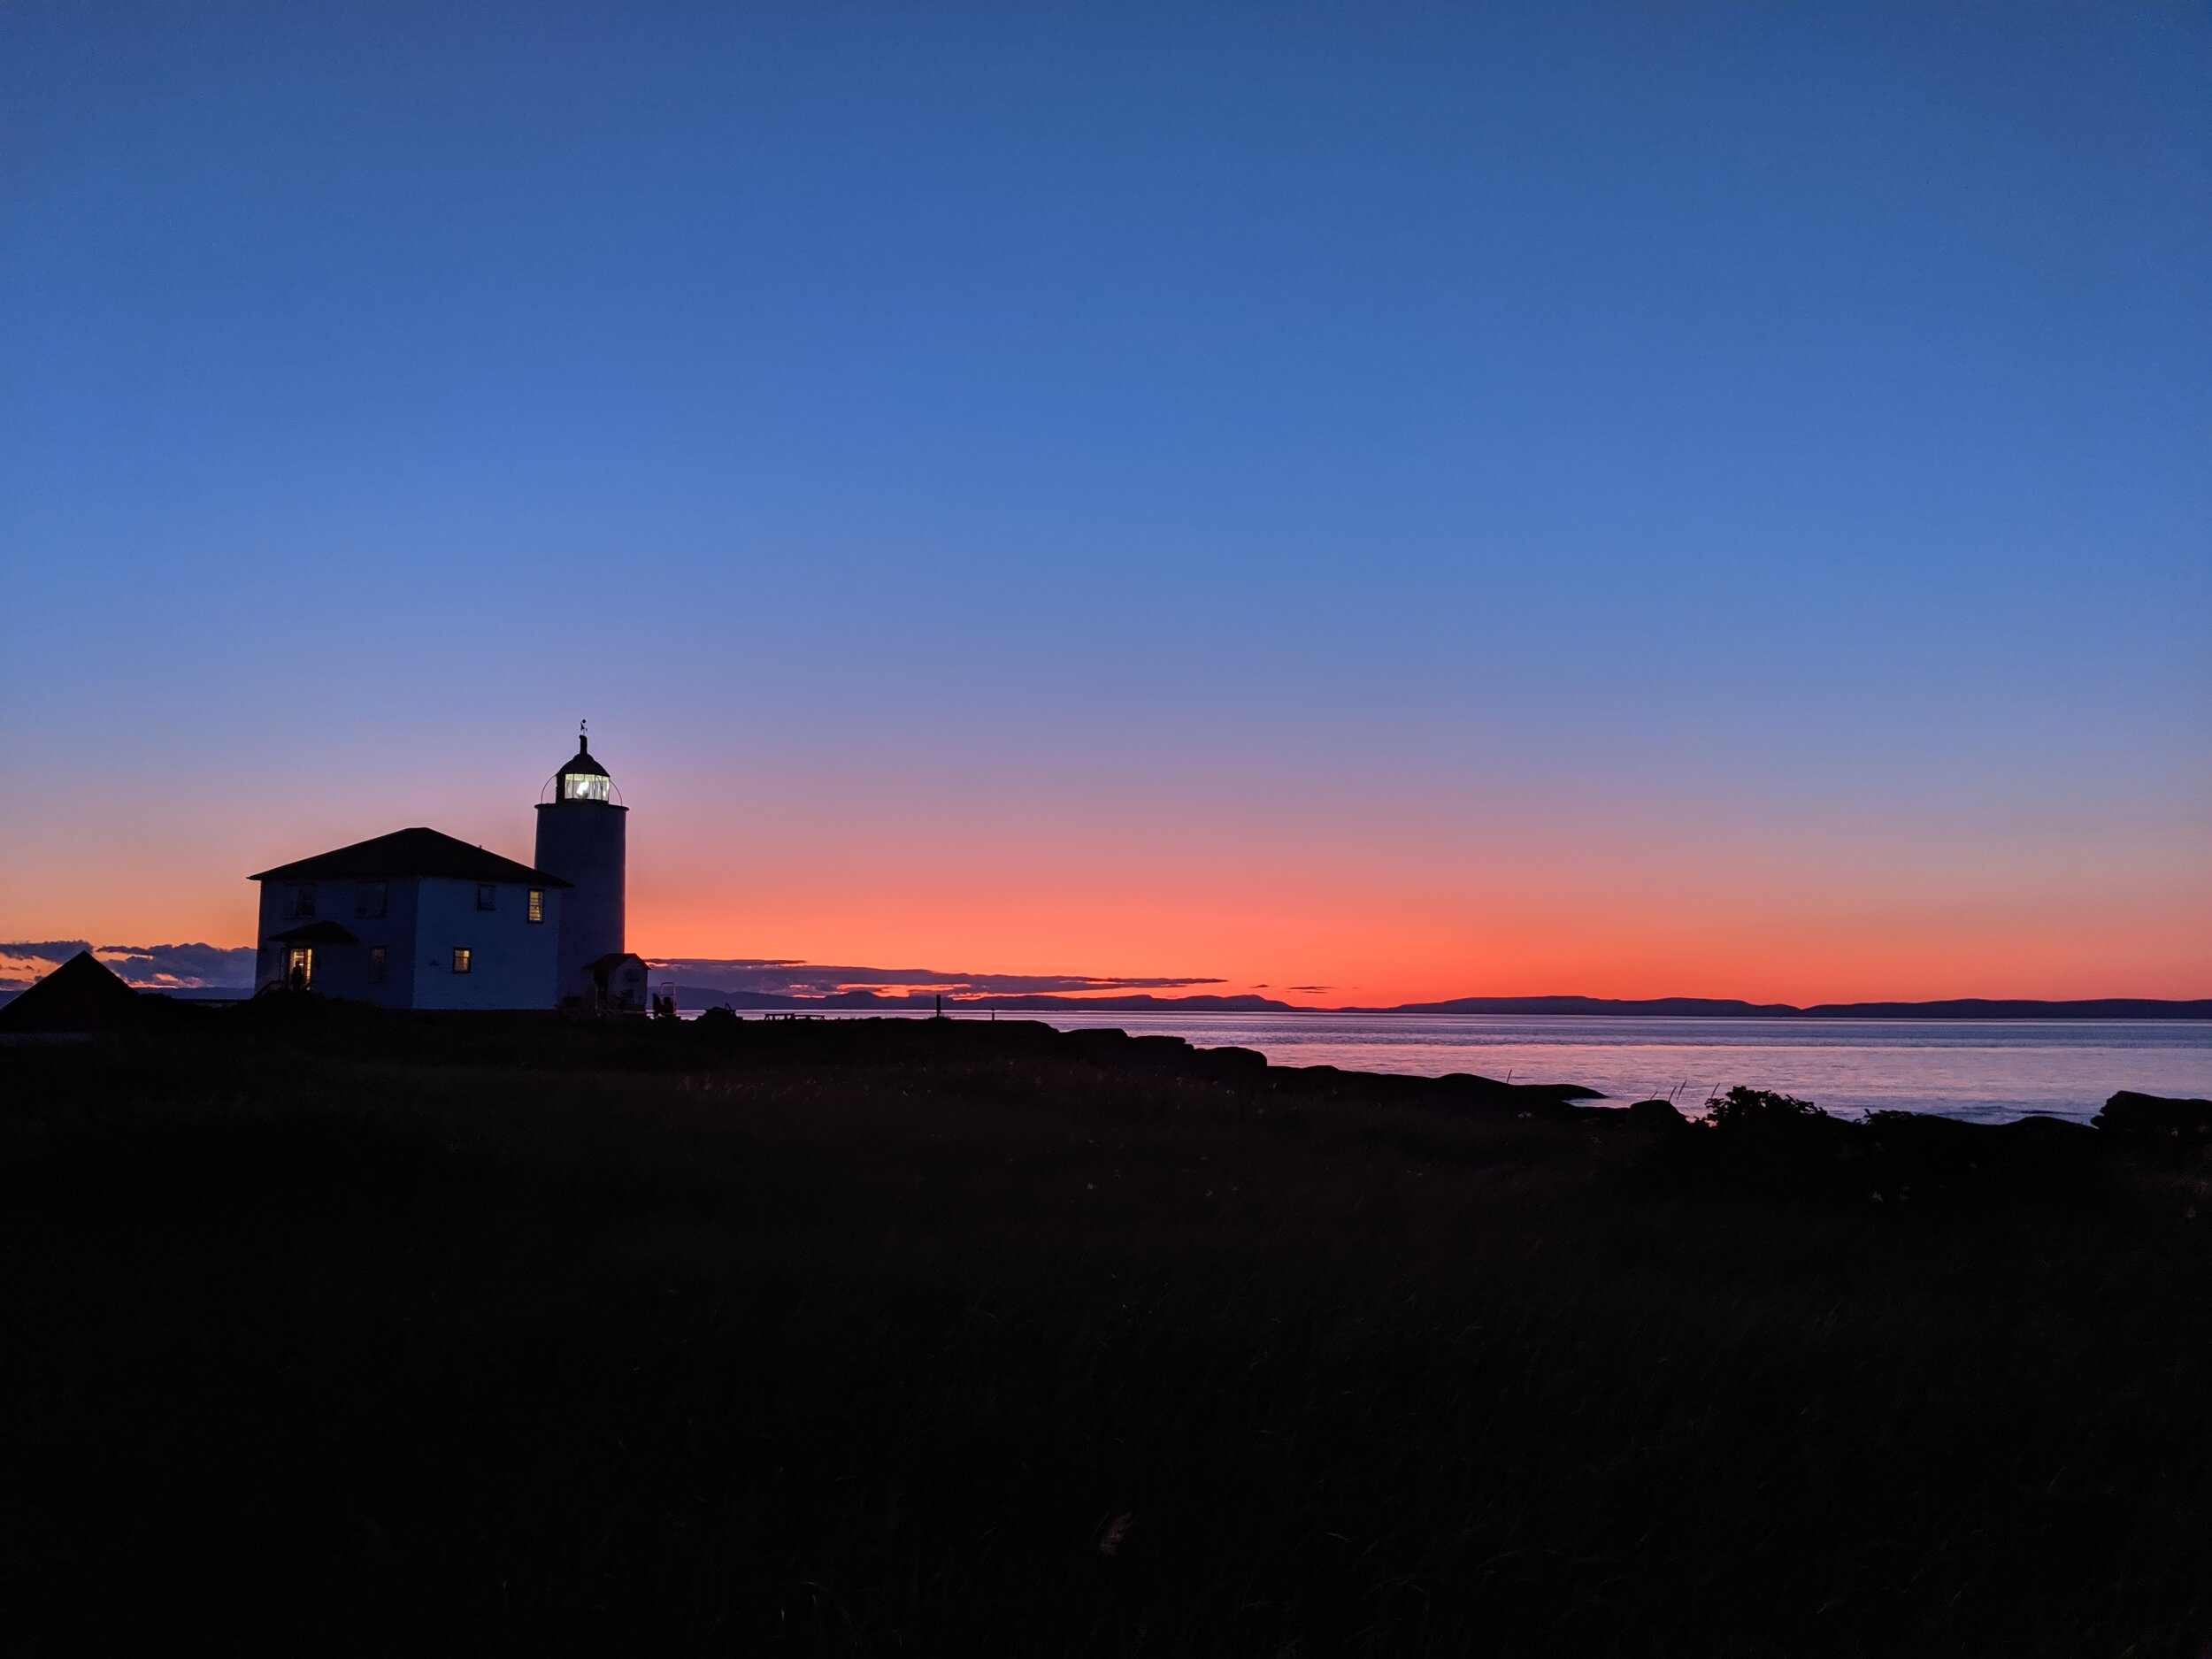 Sunset against Ile Verte lighthouse. Road trip in Gaspésie